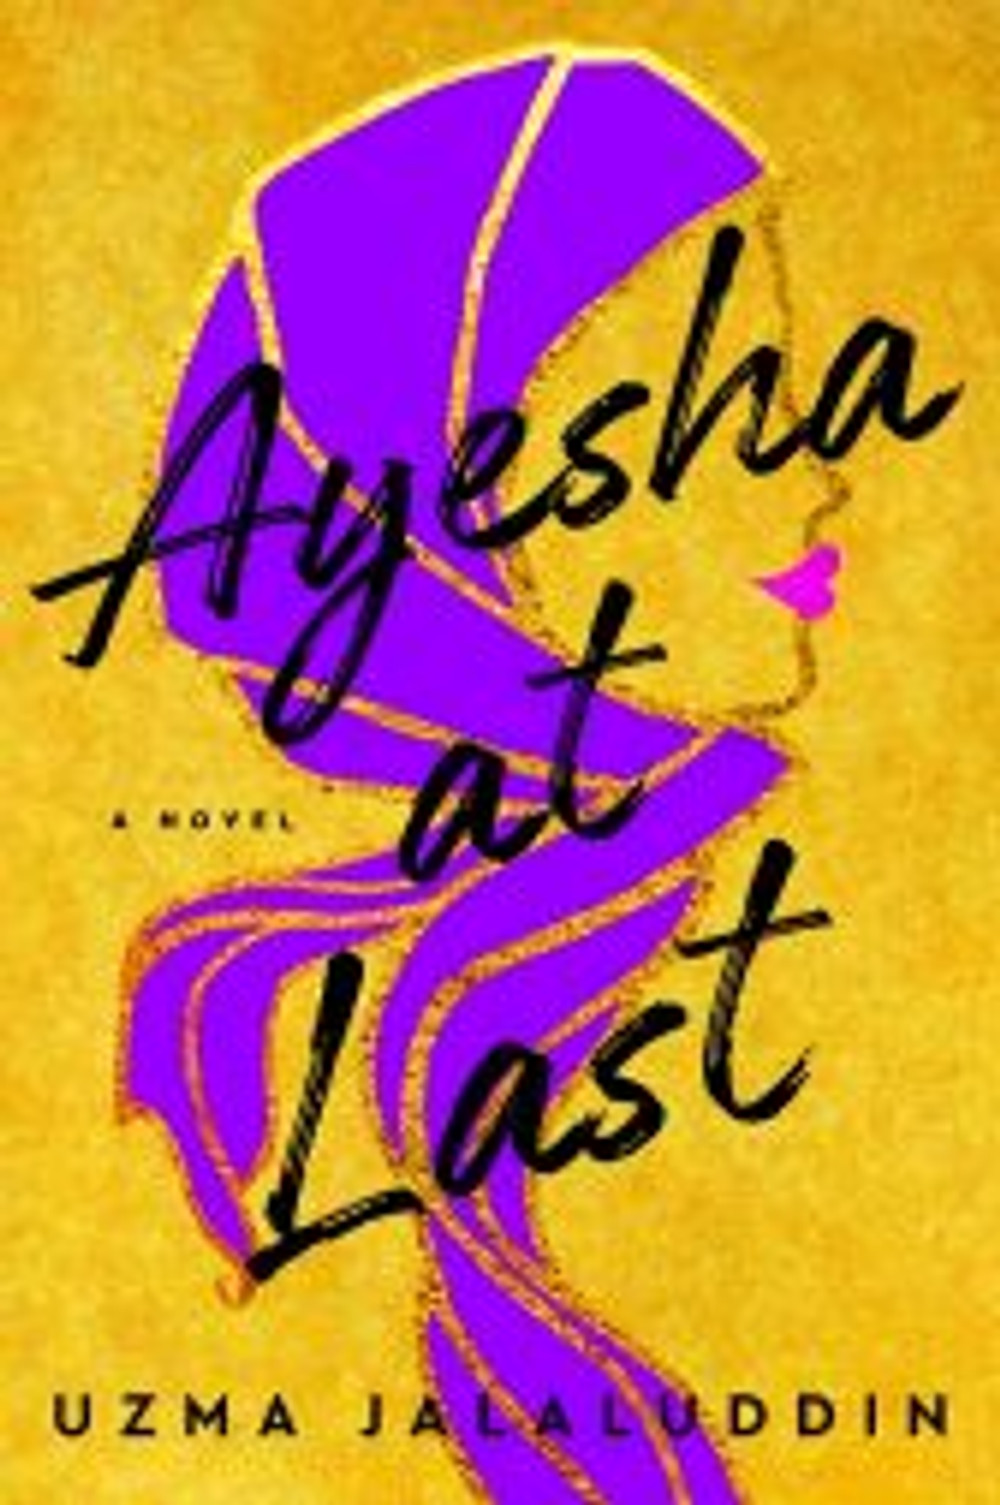 Ayesha at Last book cover